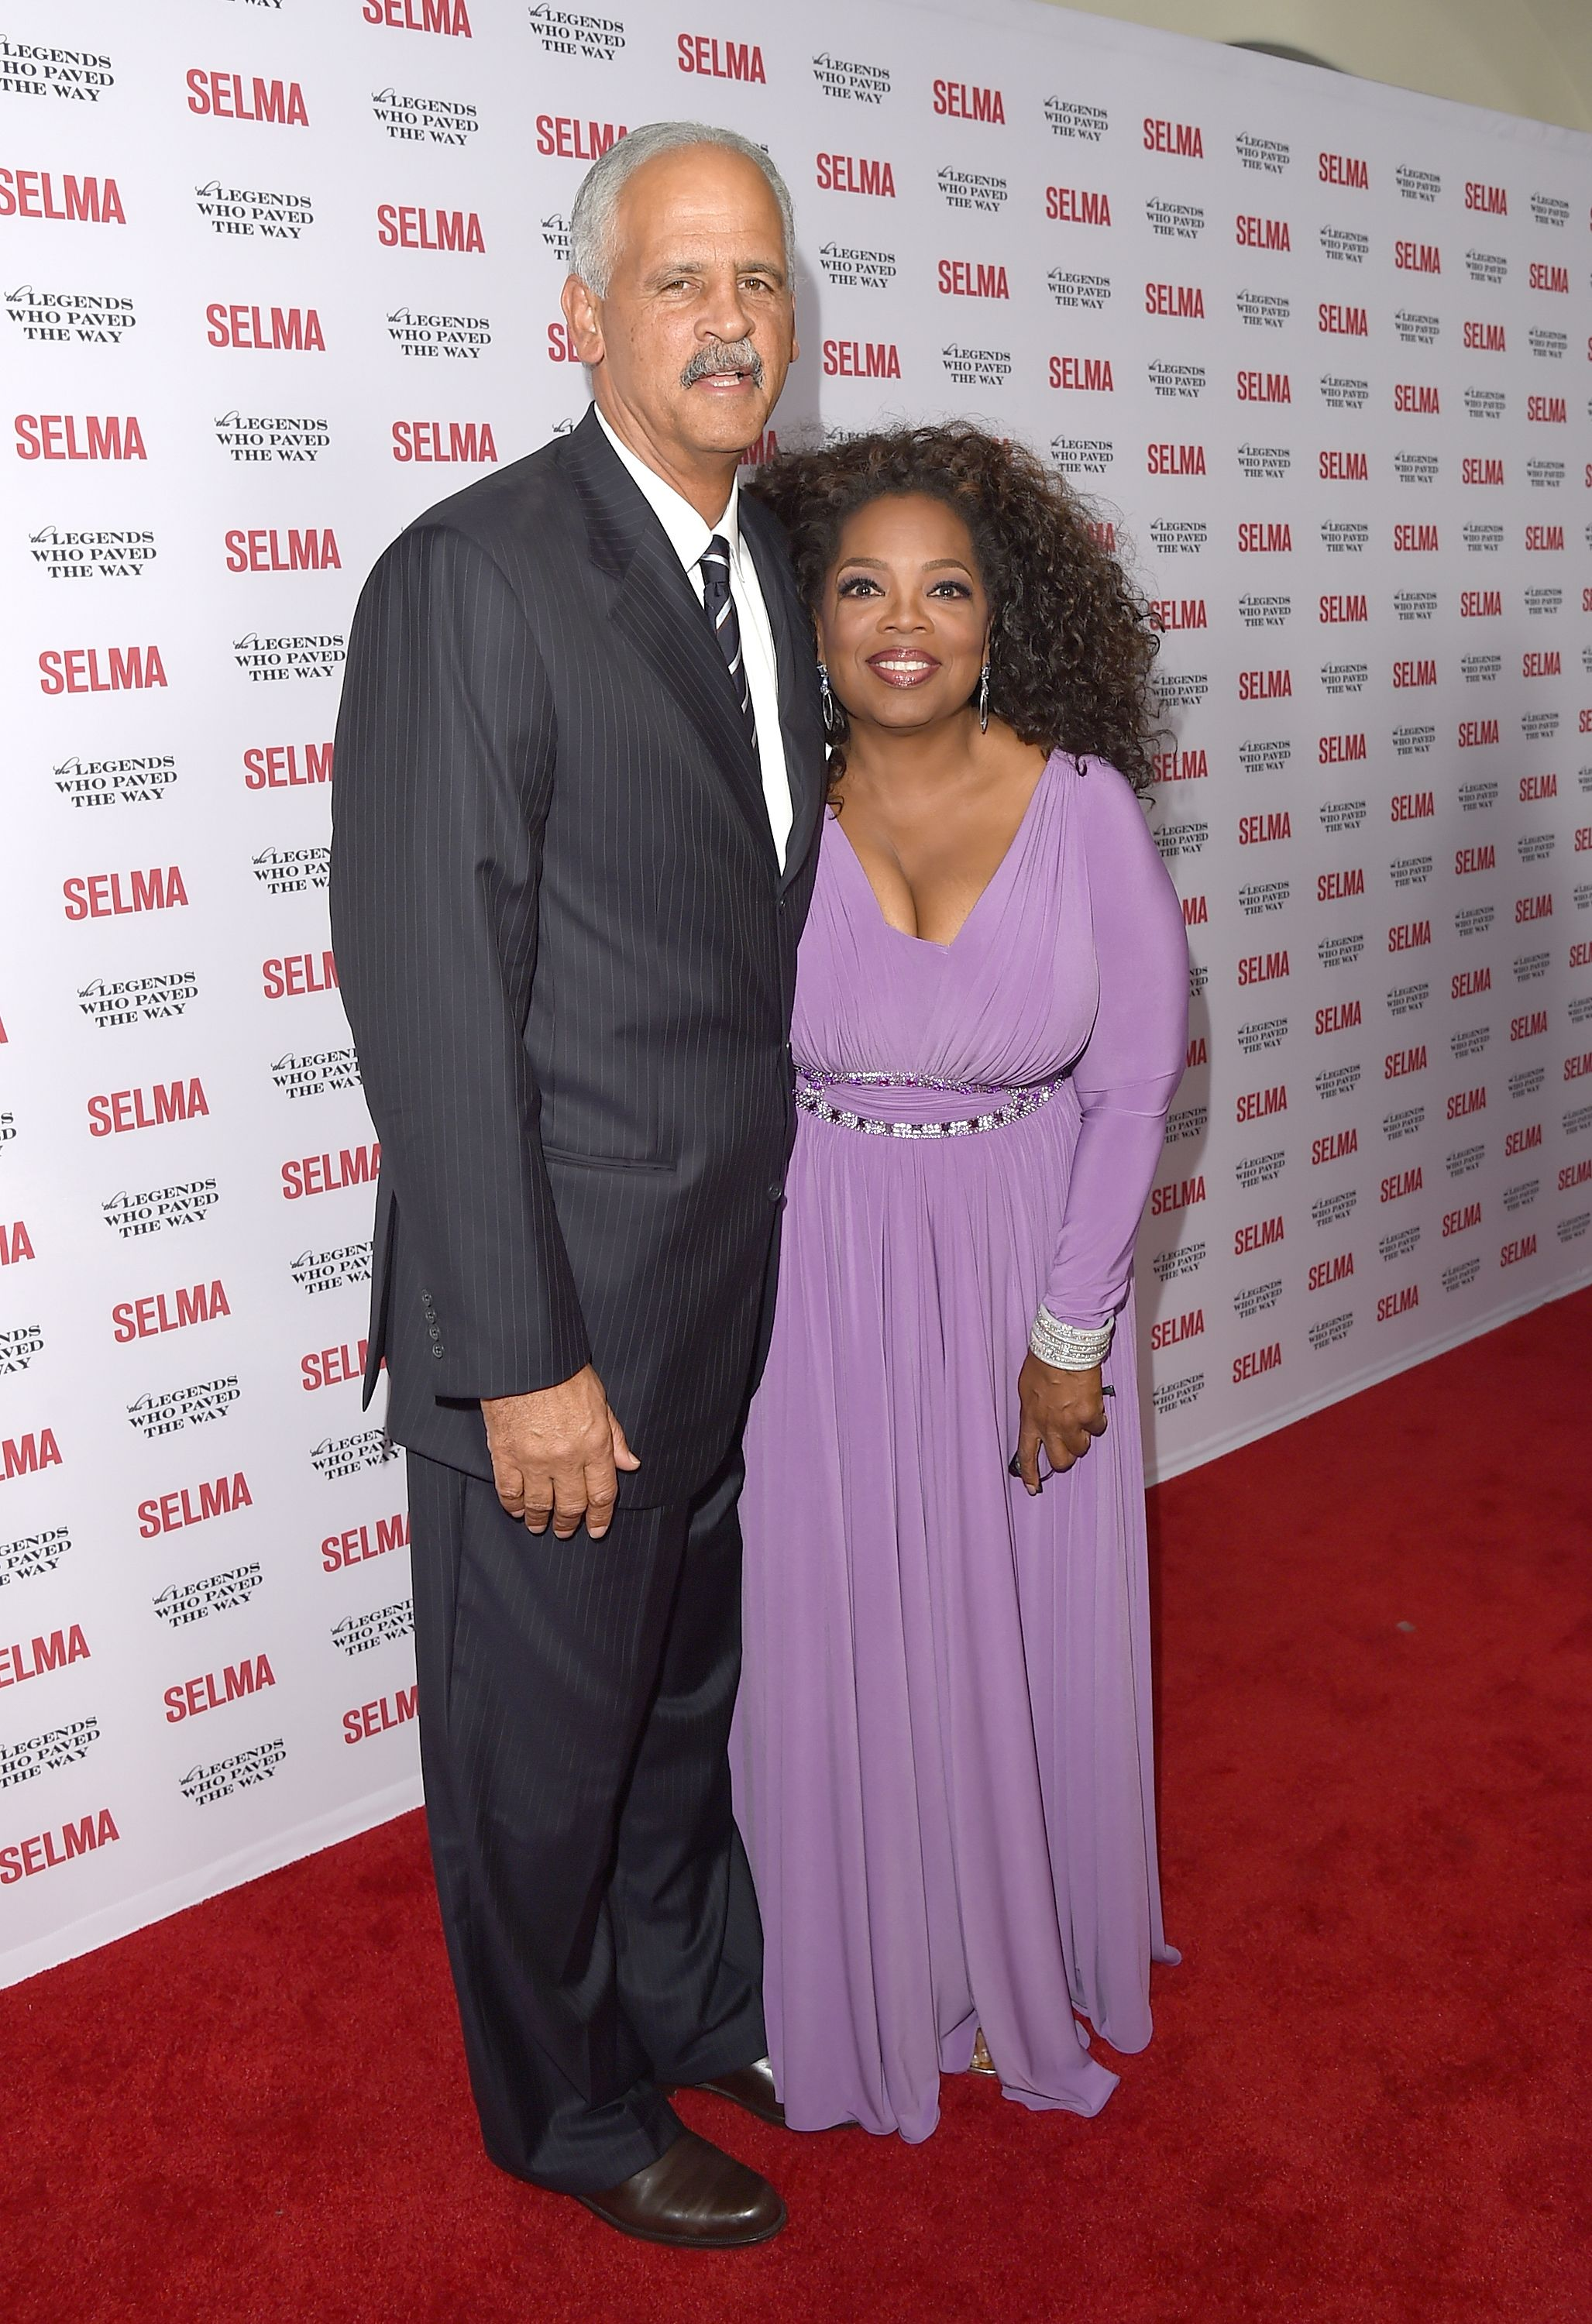 Oprah Winfrey and Stedman Graham attend the 'Selma' and the Legends Who Paved the Way Gala. | Source: Getty Images